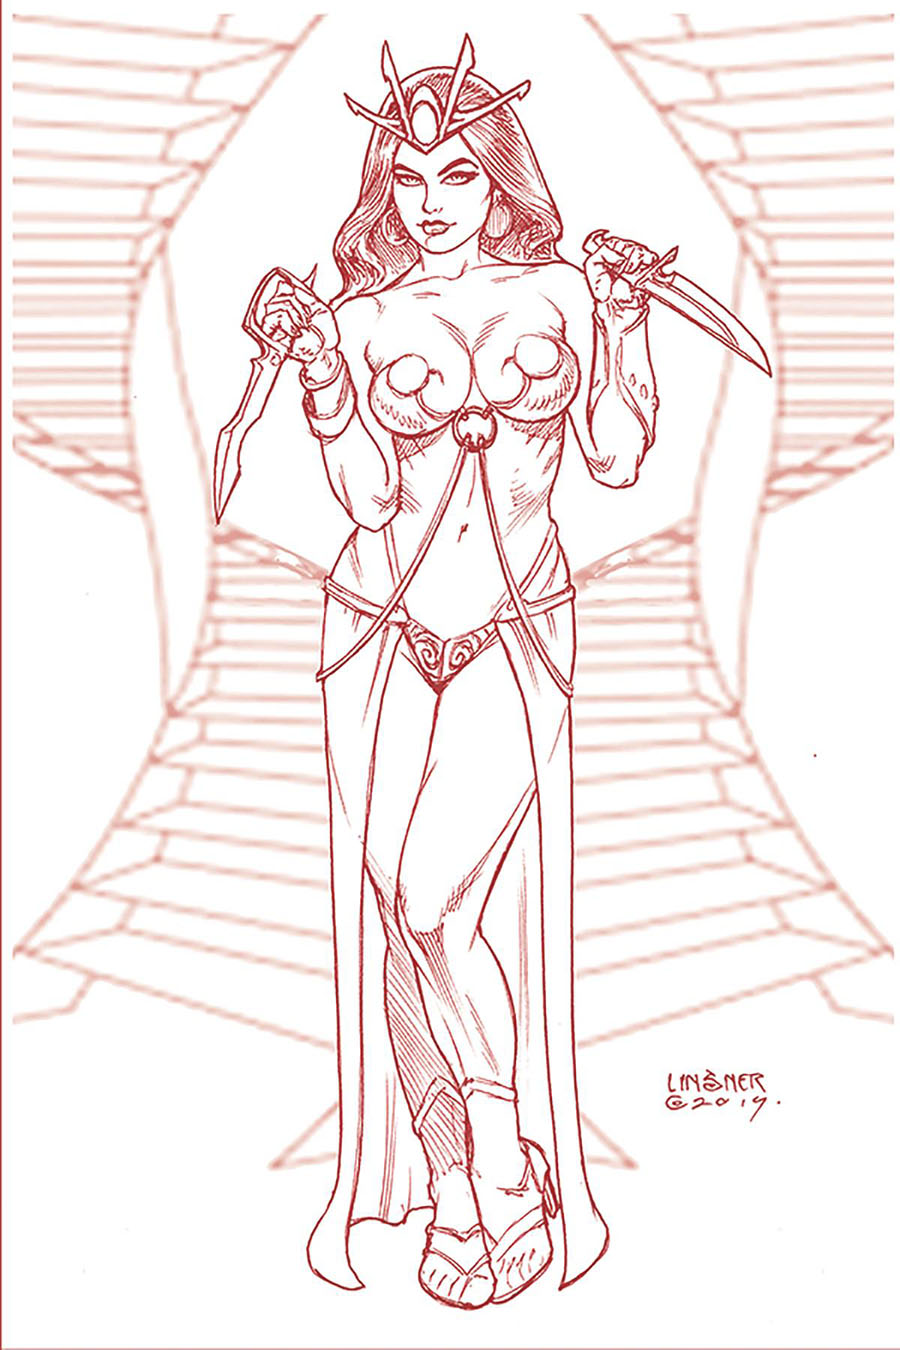 Dejah Thoris Vol 3 #5 Cover V Rare Limited Joseph Michael Linsner Martian Red Cover